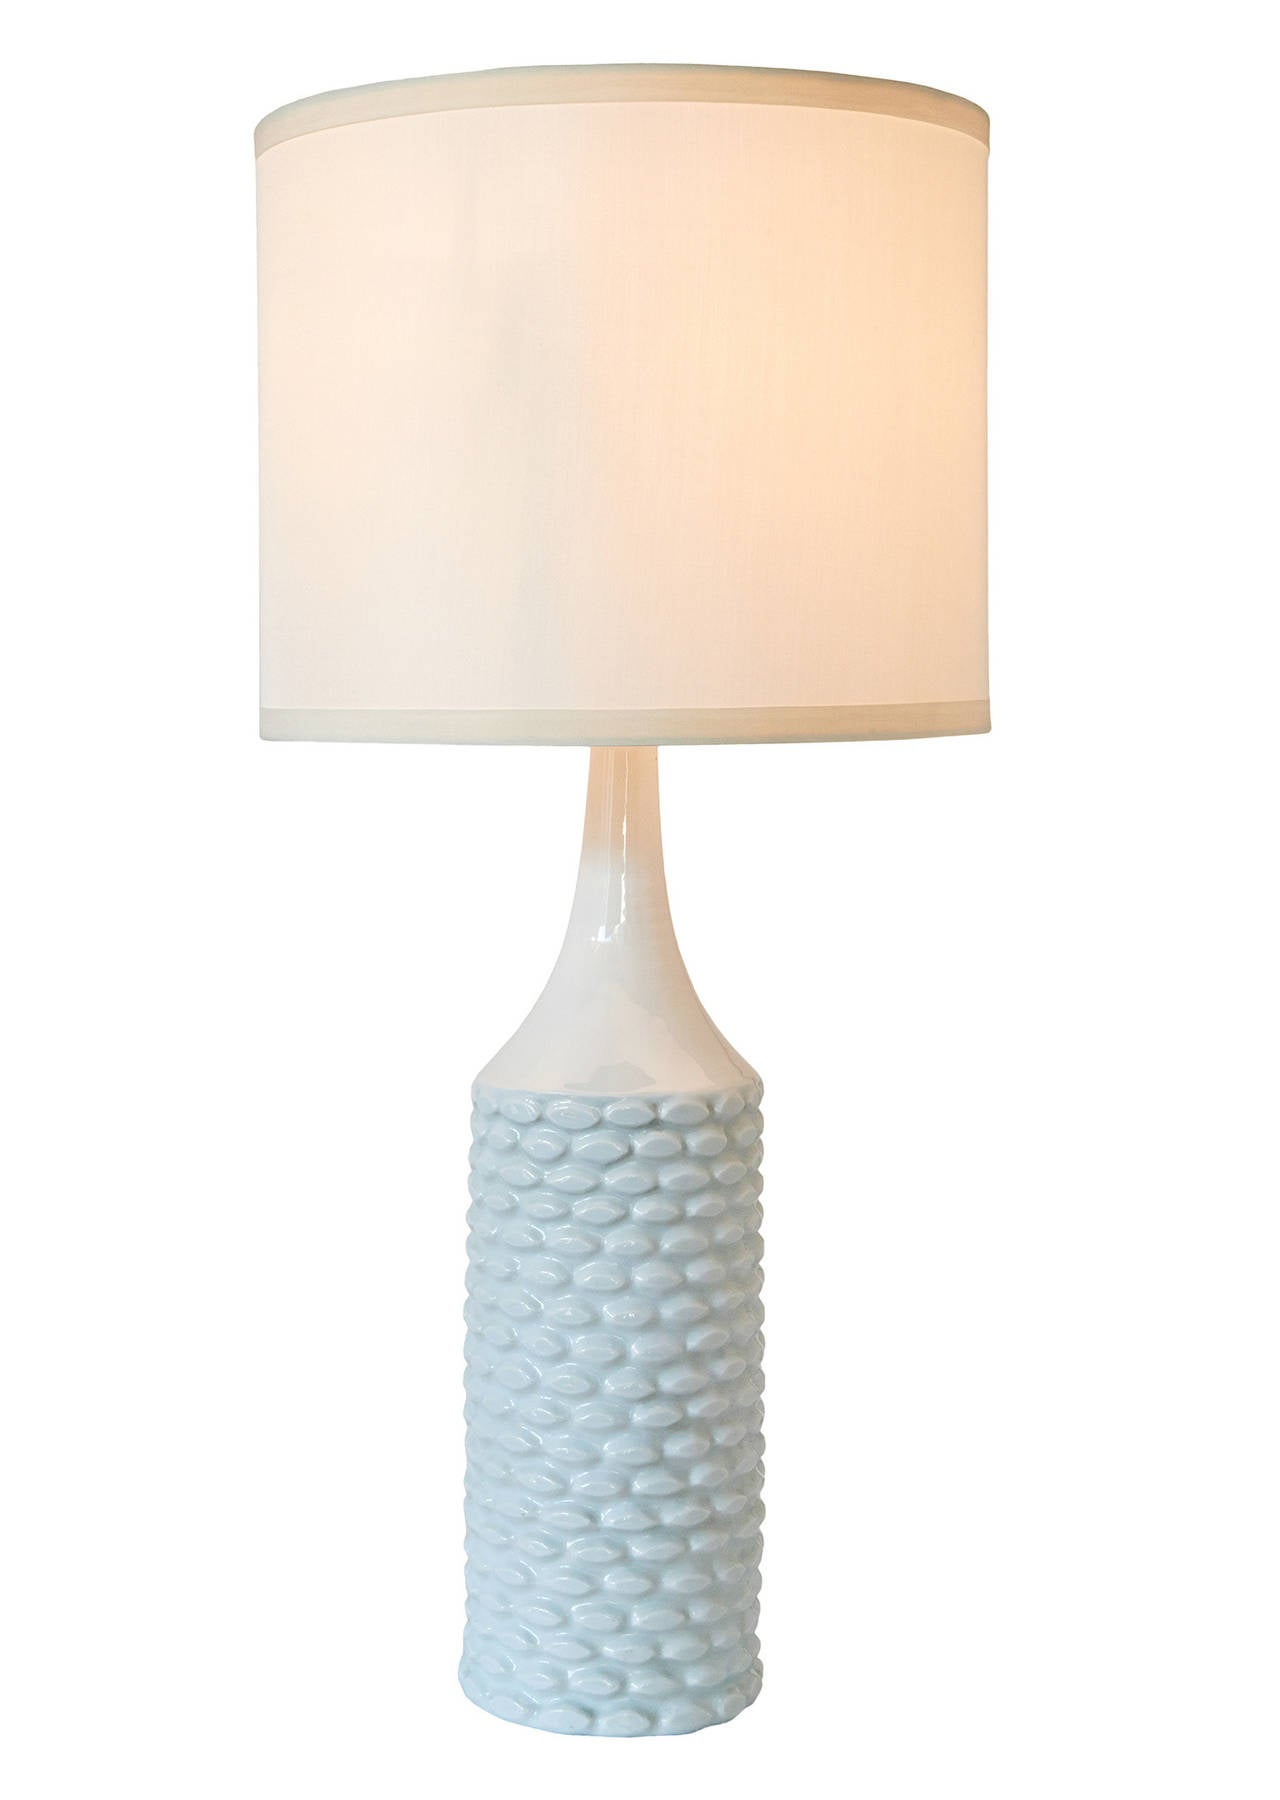 Scandinavian Modern 1940 Table Lamp by Axel Salto For Sale